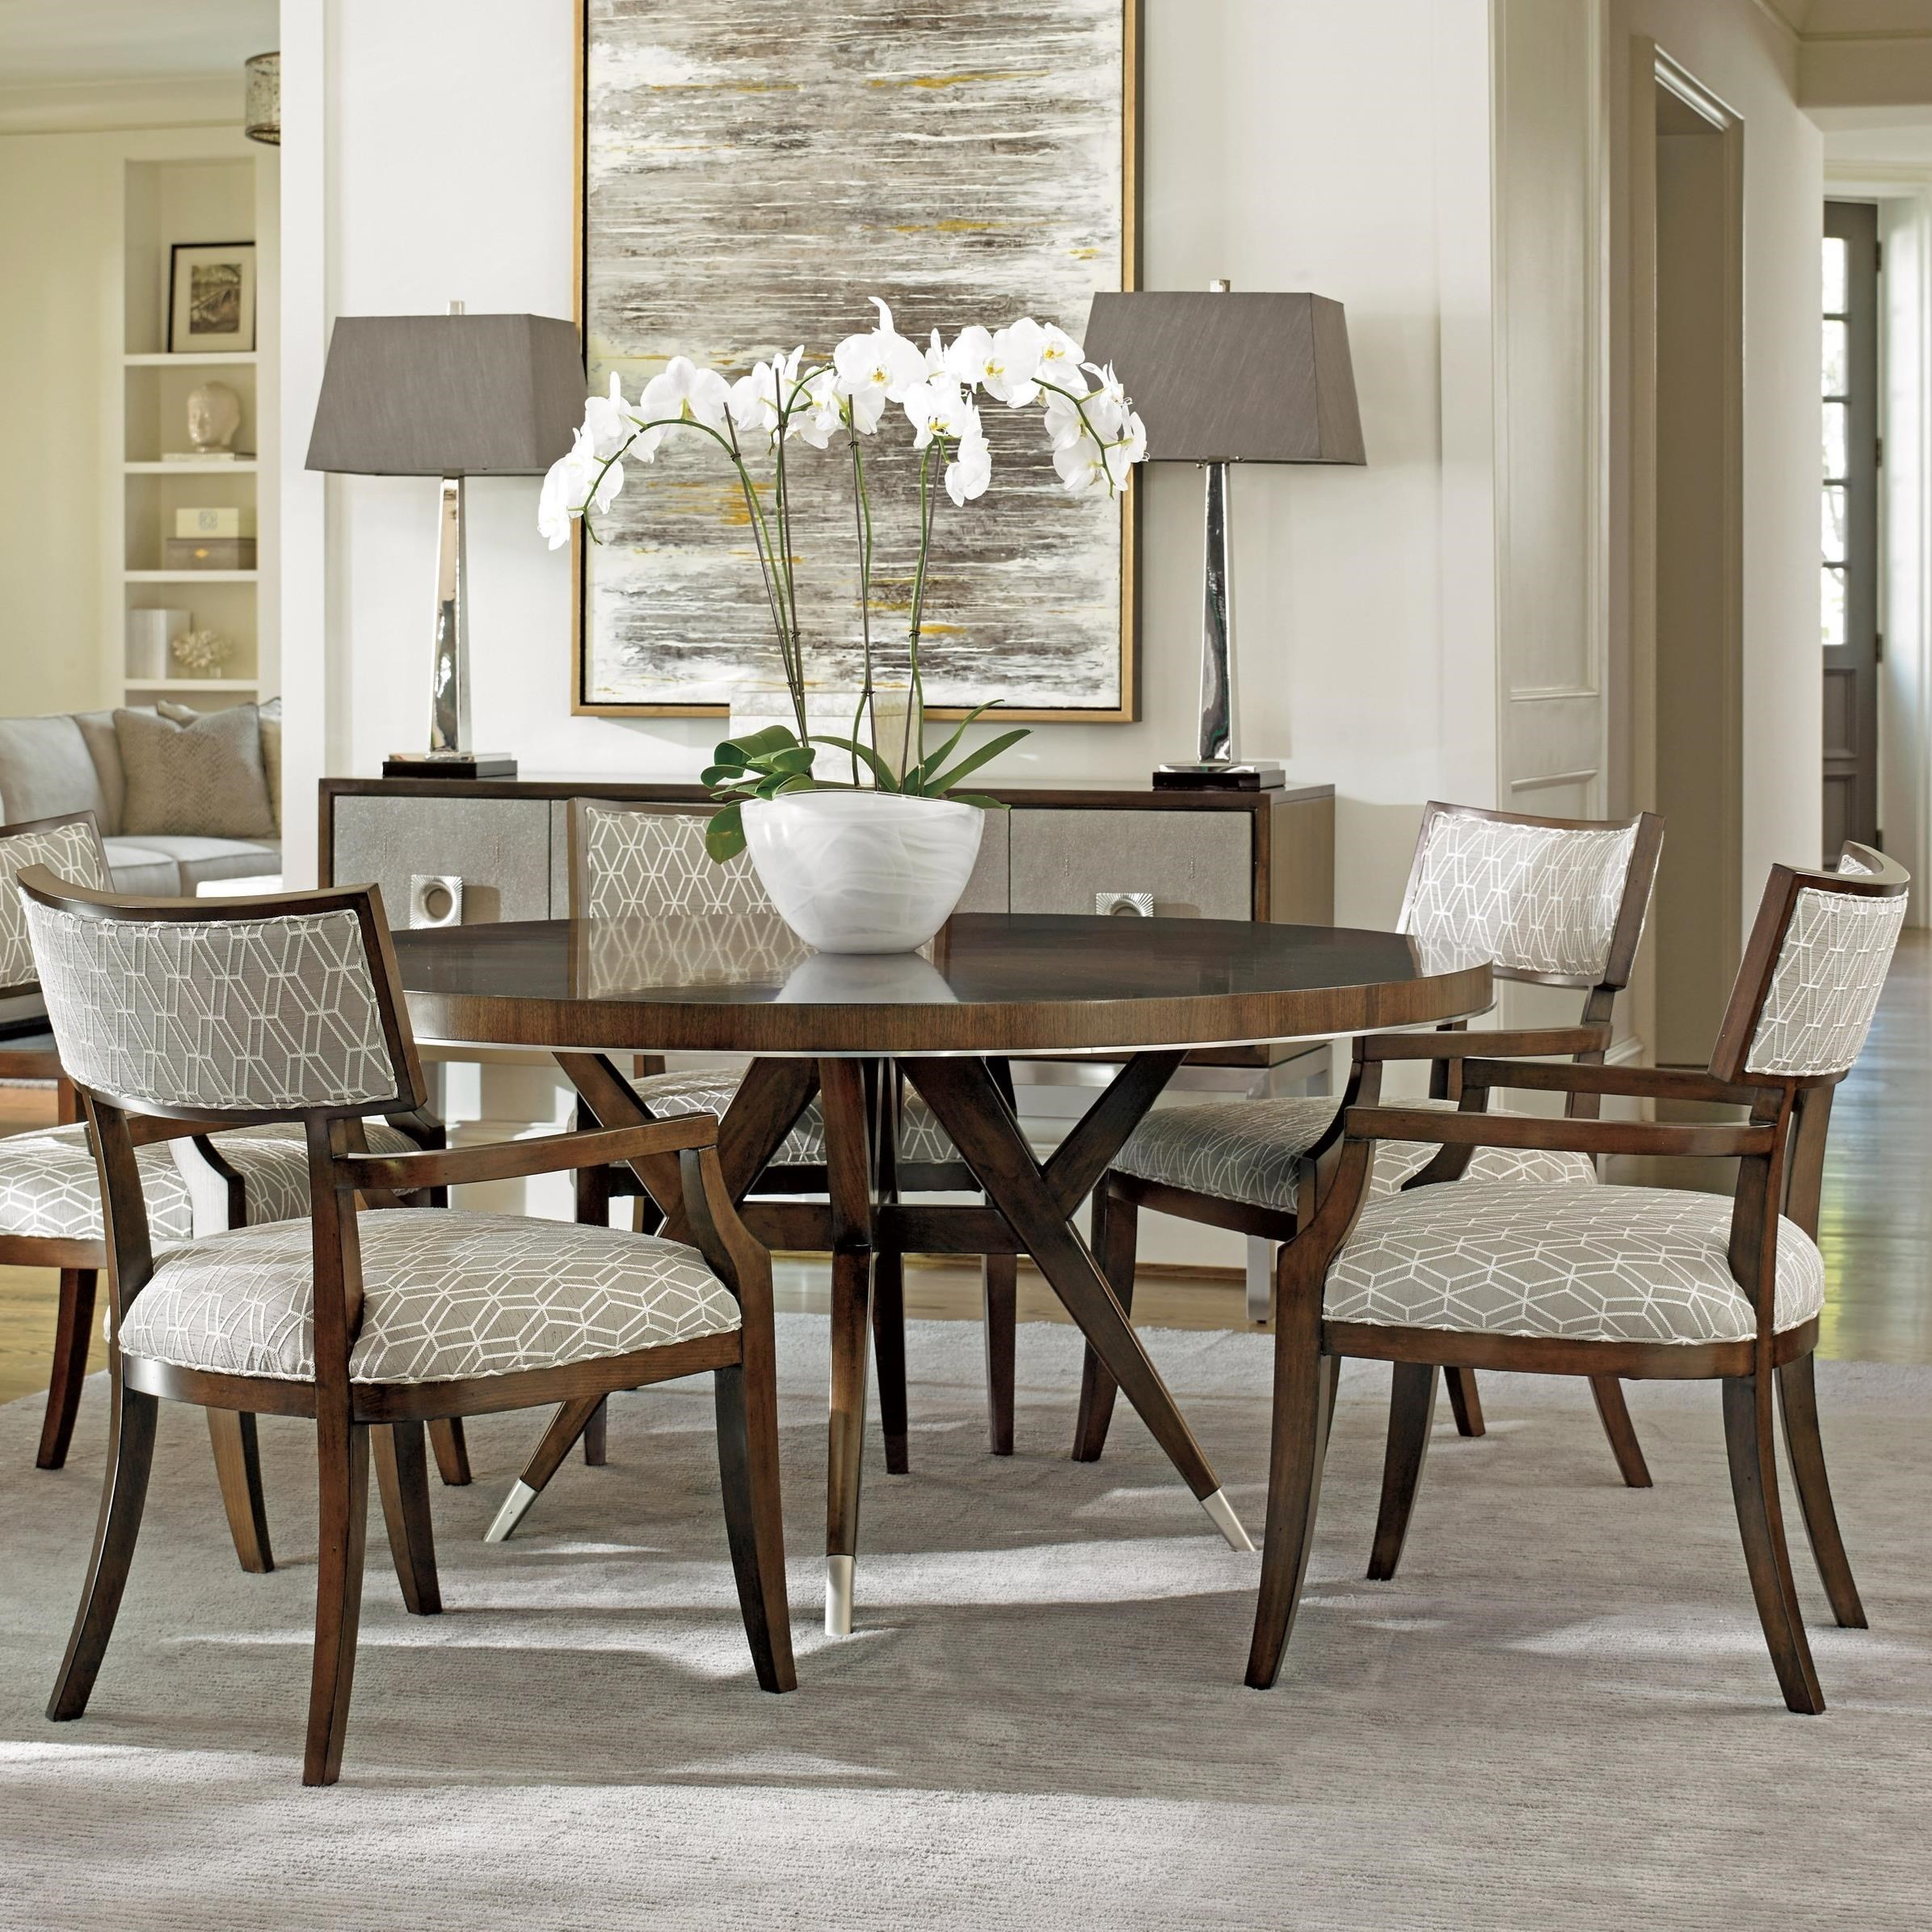 Merveilleux Lexington MacArthur Park Six Piece Dining Set With Strathmore Table And  Whittier Arm Chairs